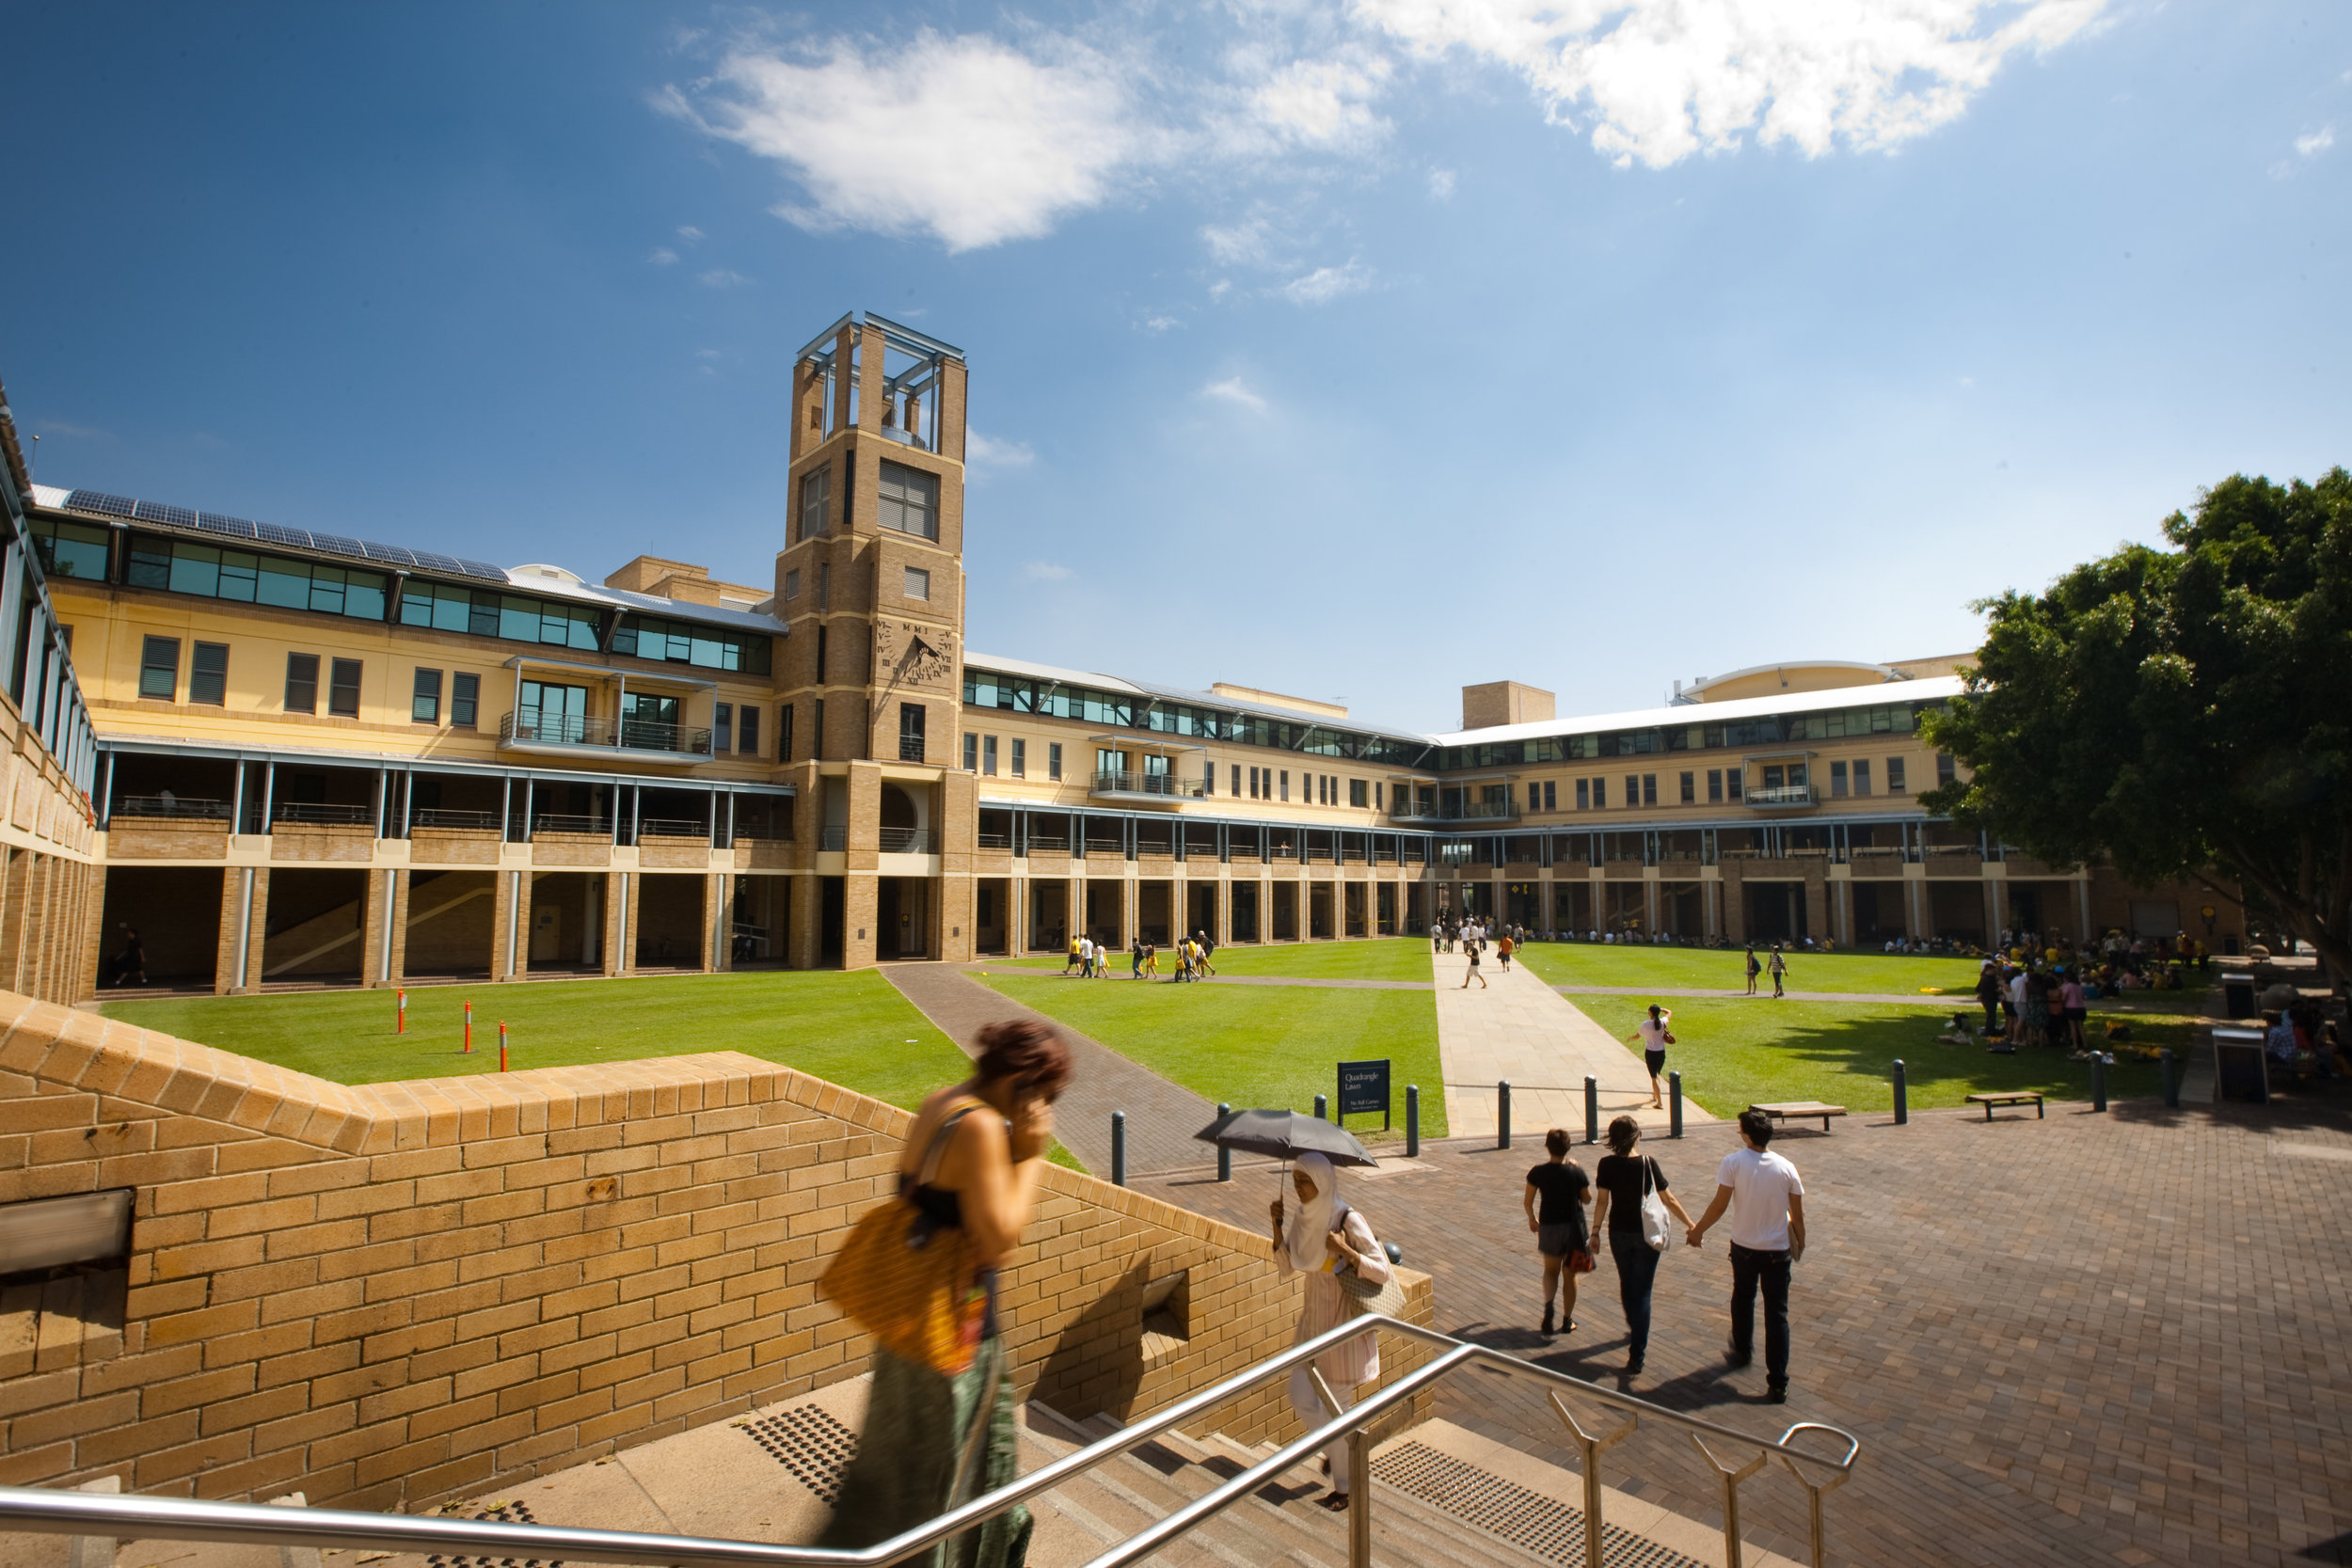 Unsw_quadrangle_building_2010-05-11.jpg